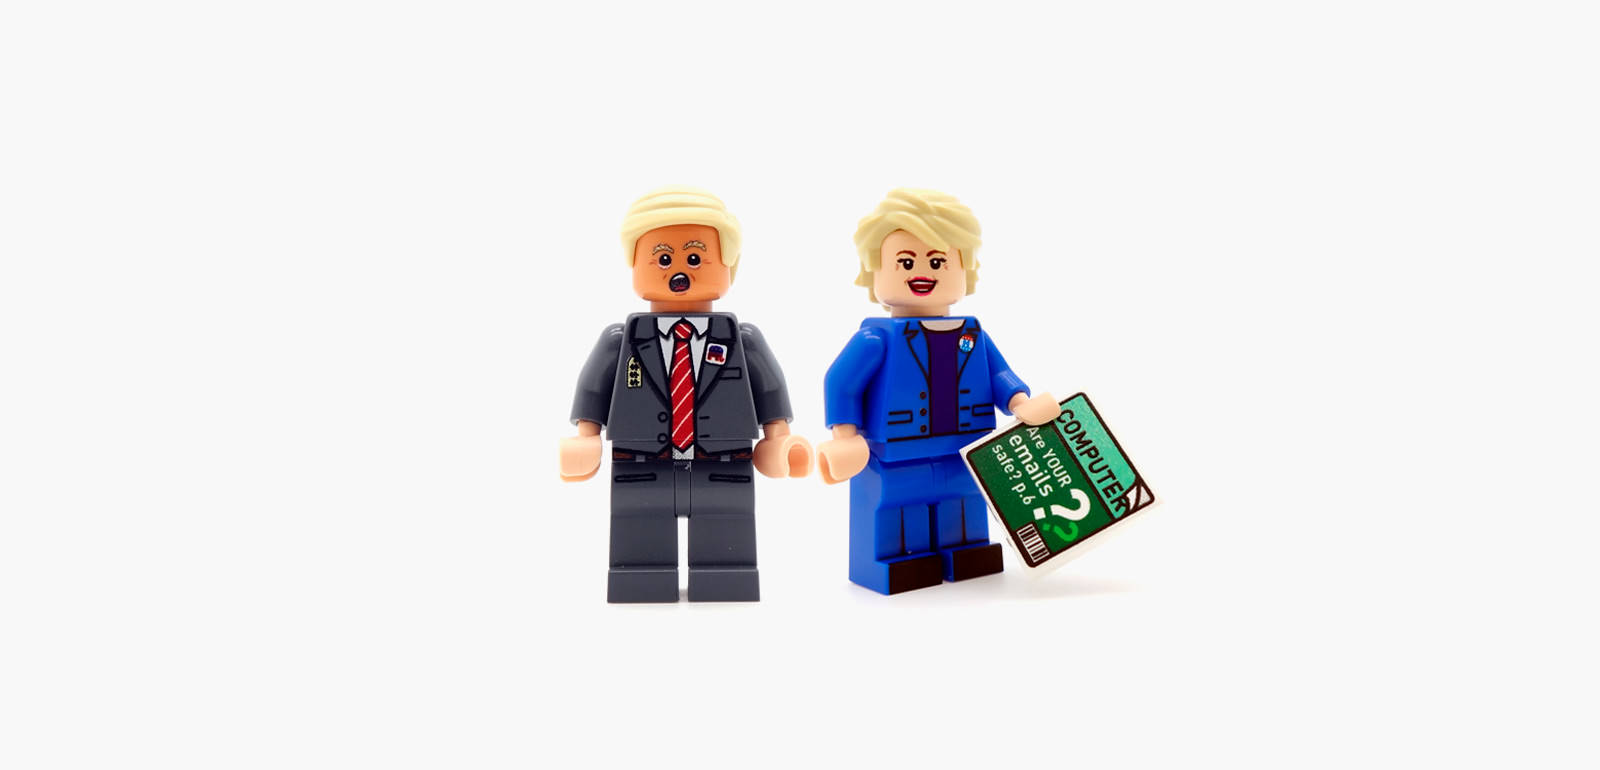 Trump & Clinton Custom Minifigure Set